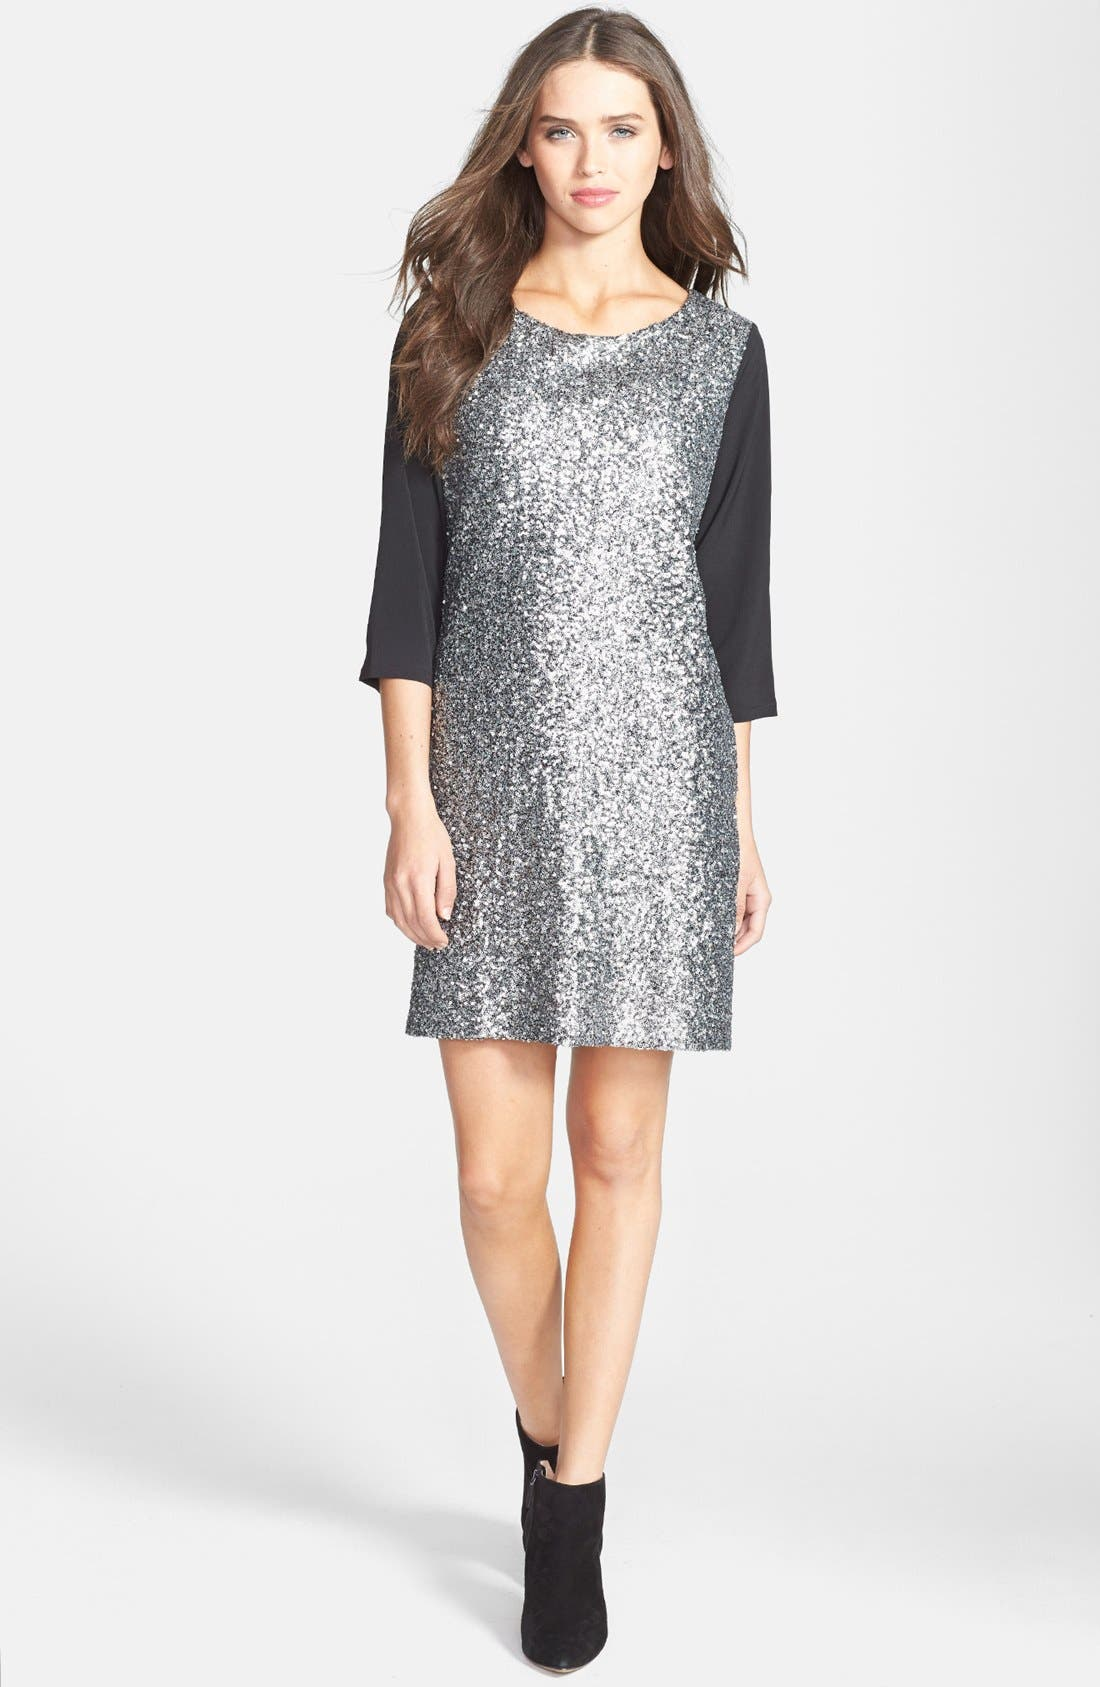 Main Image - Press Chiffon & Sequin Shift Dress